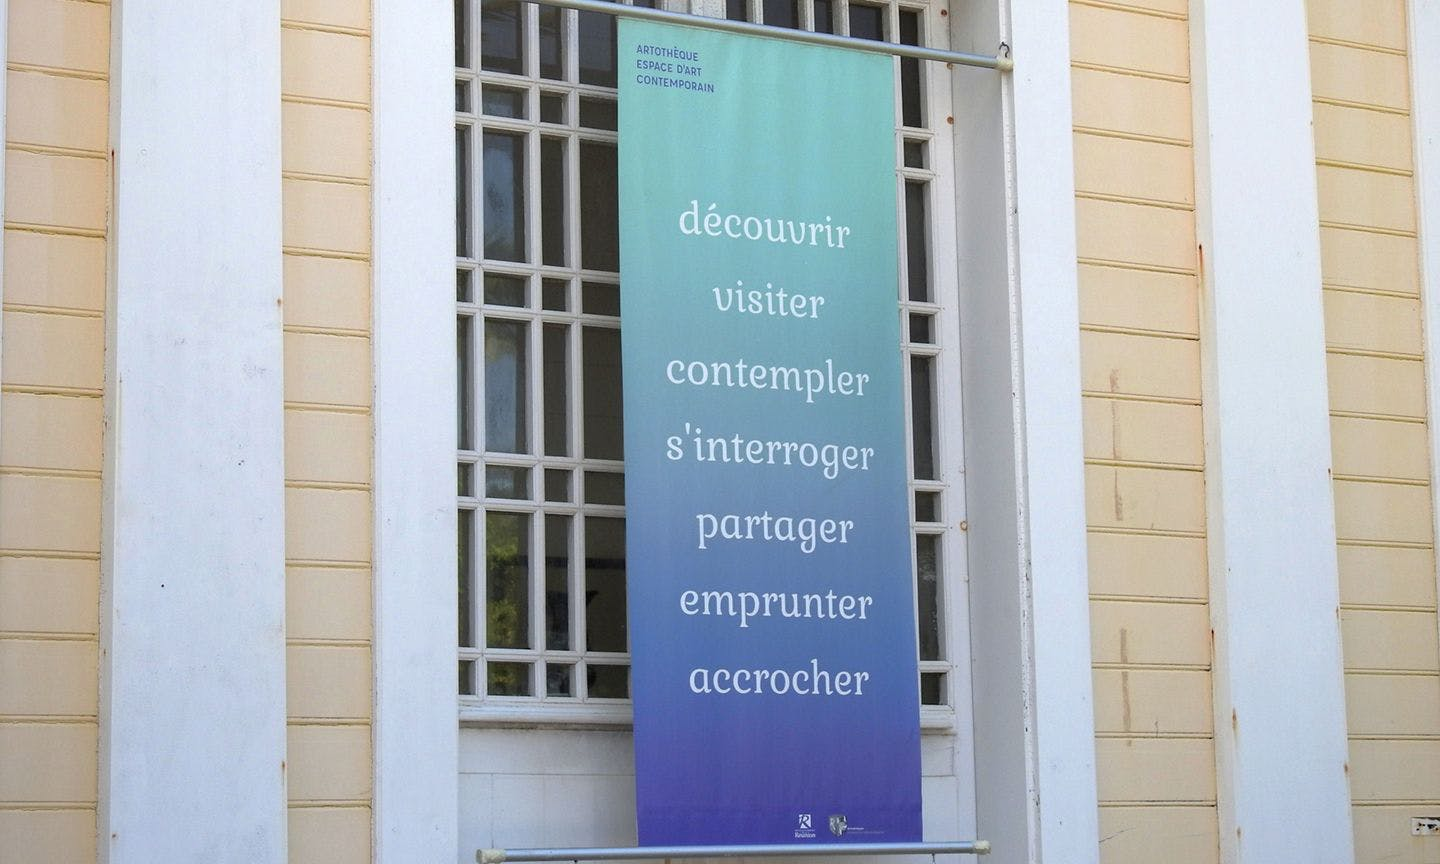 close-up of the graphic design of a blue banner with white text hanging on the Artothèque (Art Library) de la Réunion building